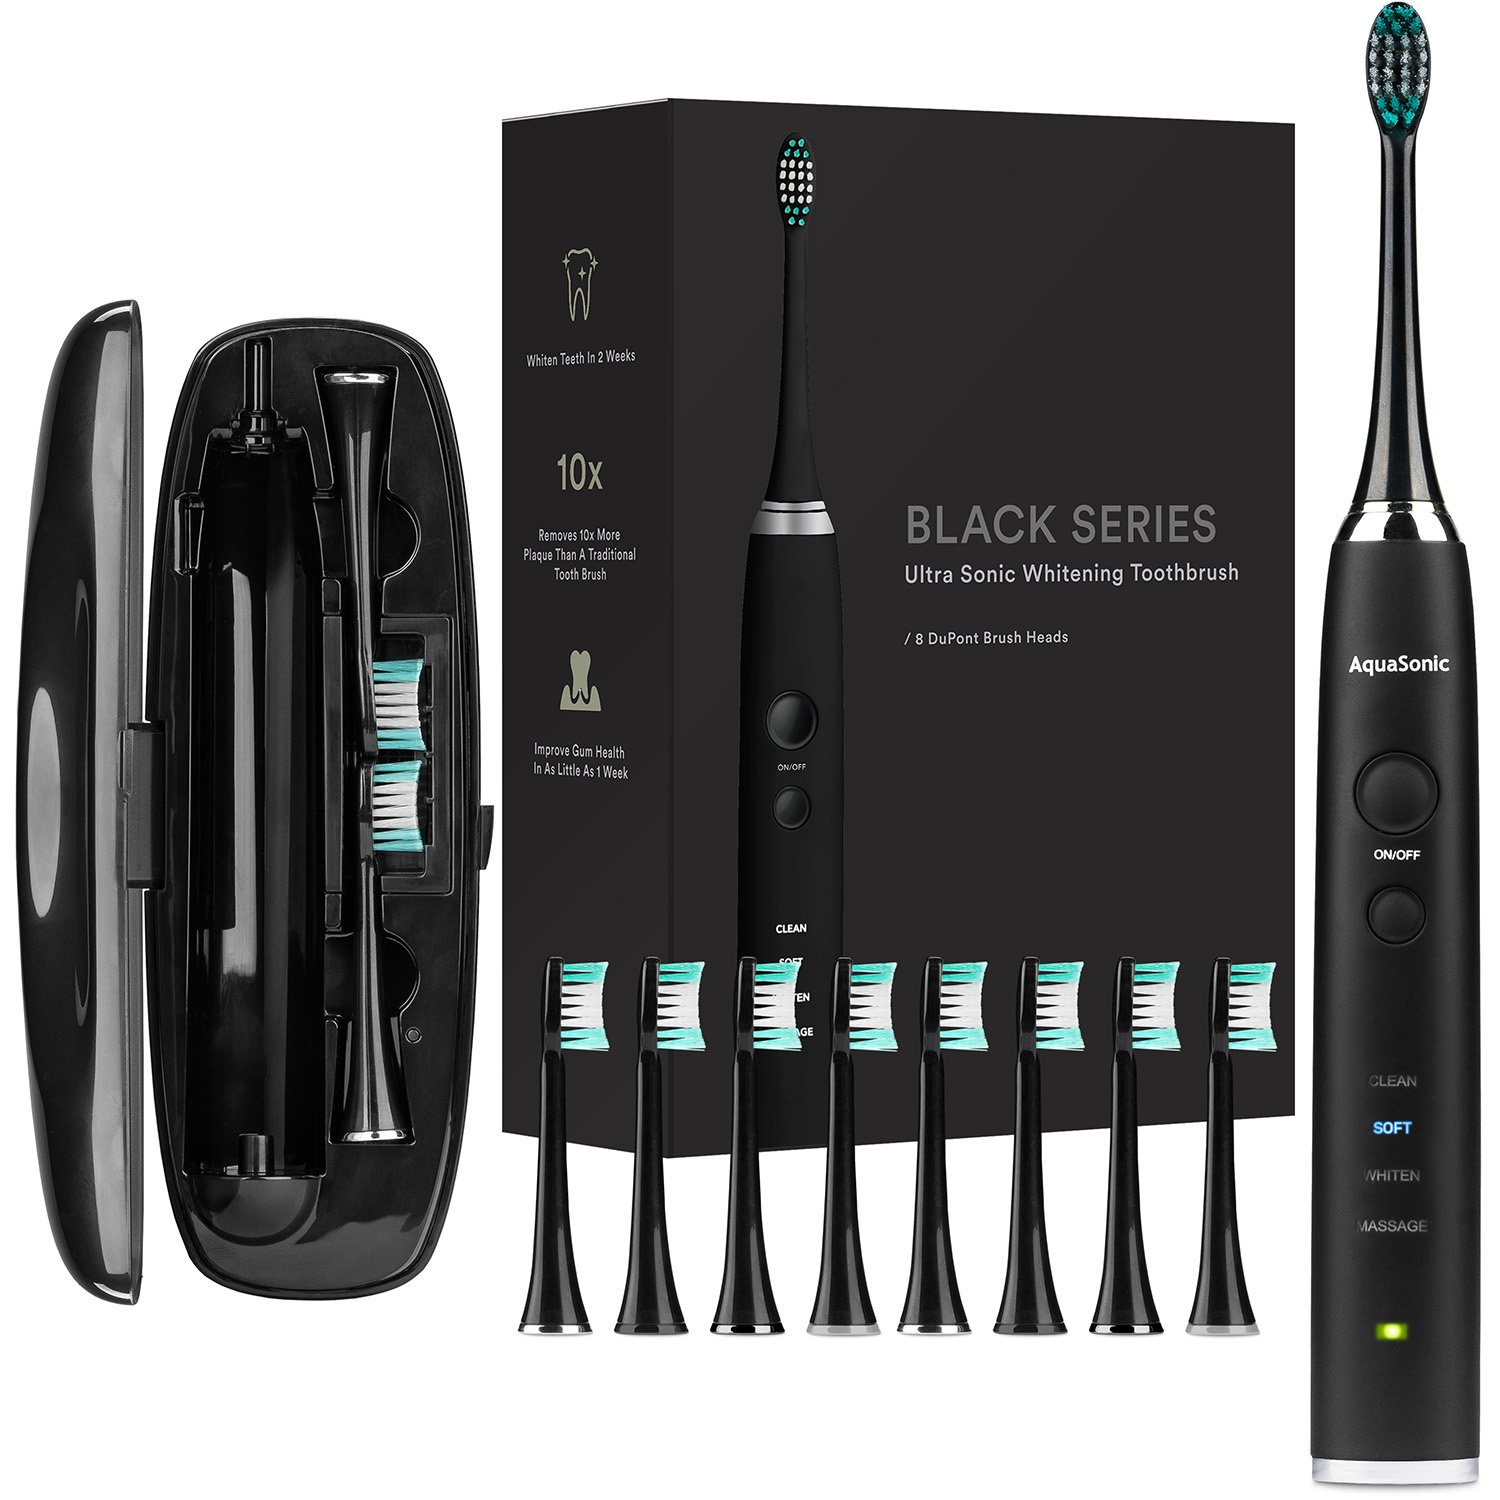 AquaSonic Black Series Ultra Whitening Toothbrush – 8 DuPont Brush Heads Travel Case Included – Ultra Sonic 40,000 VPM Motor Wireless Charging – 4 Modes w Smart Timer – Modern Electric Toothbrush